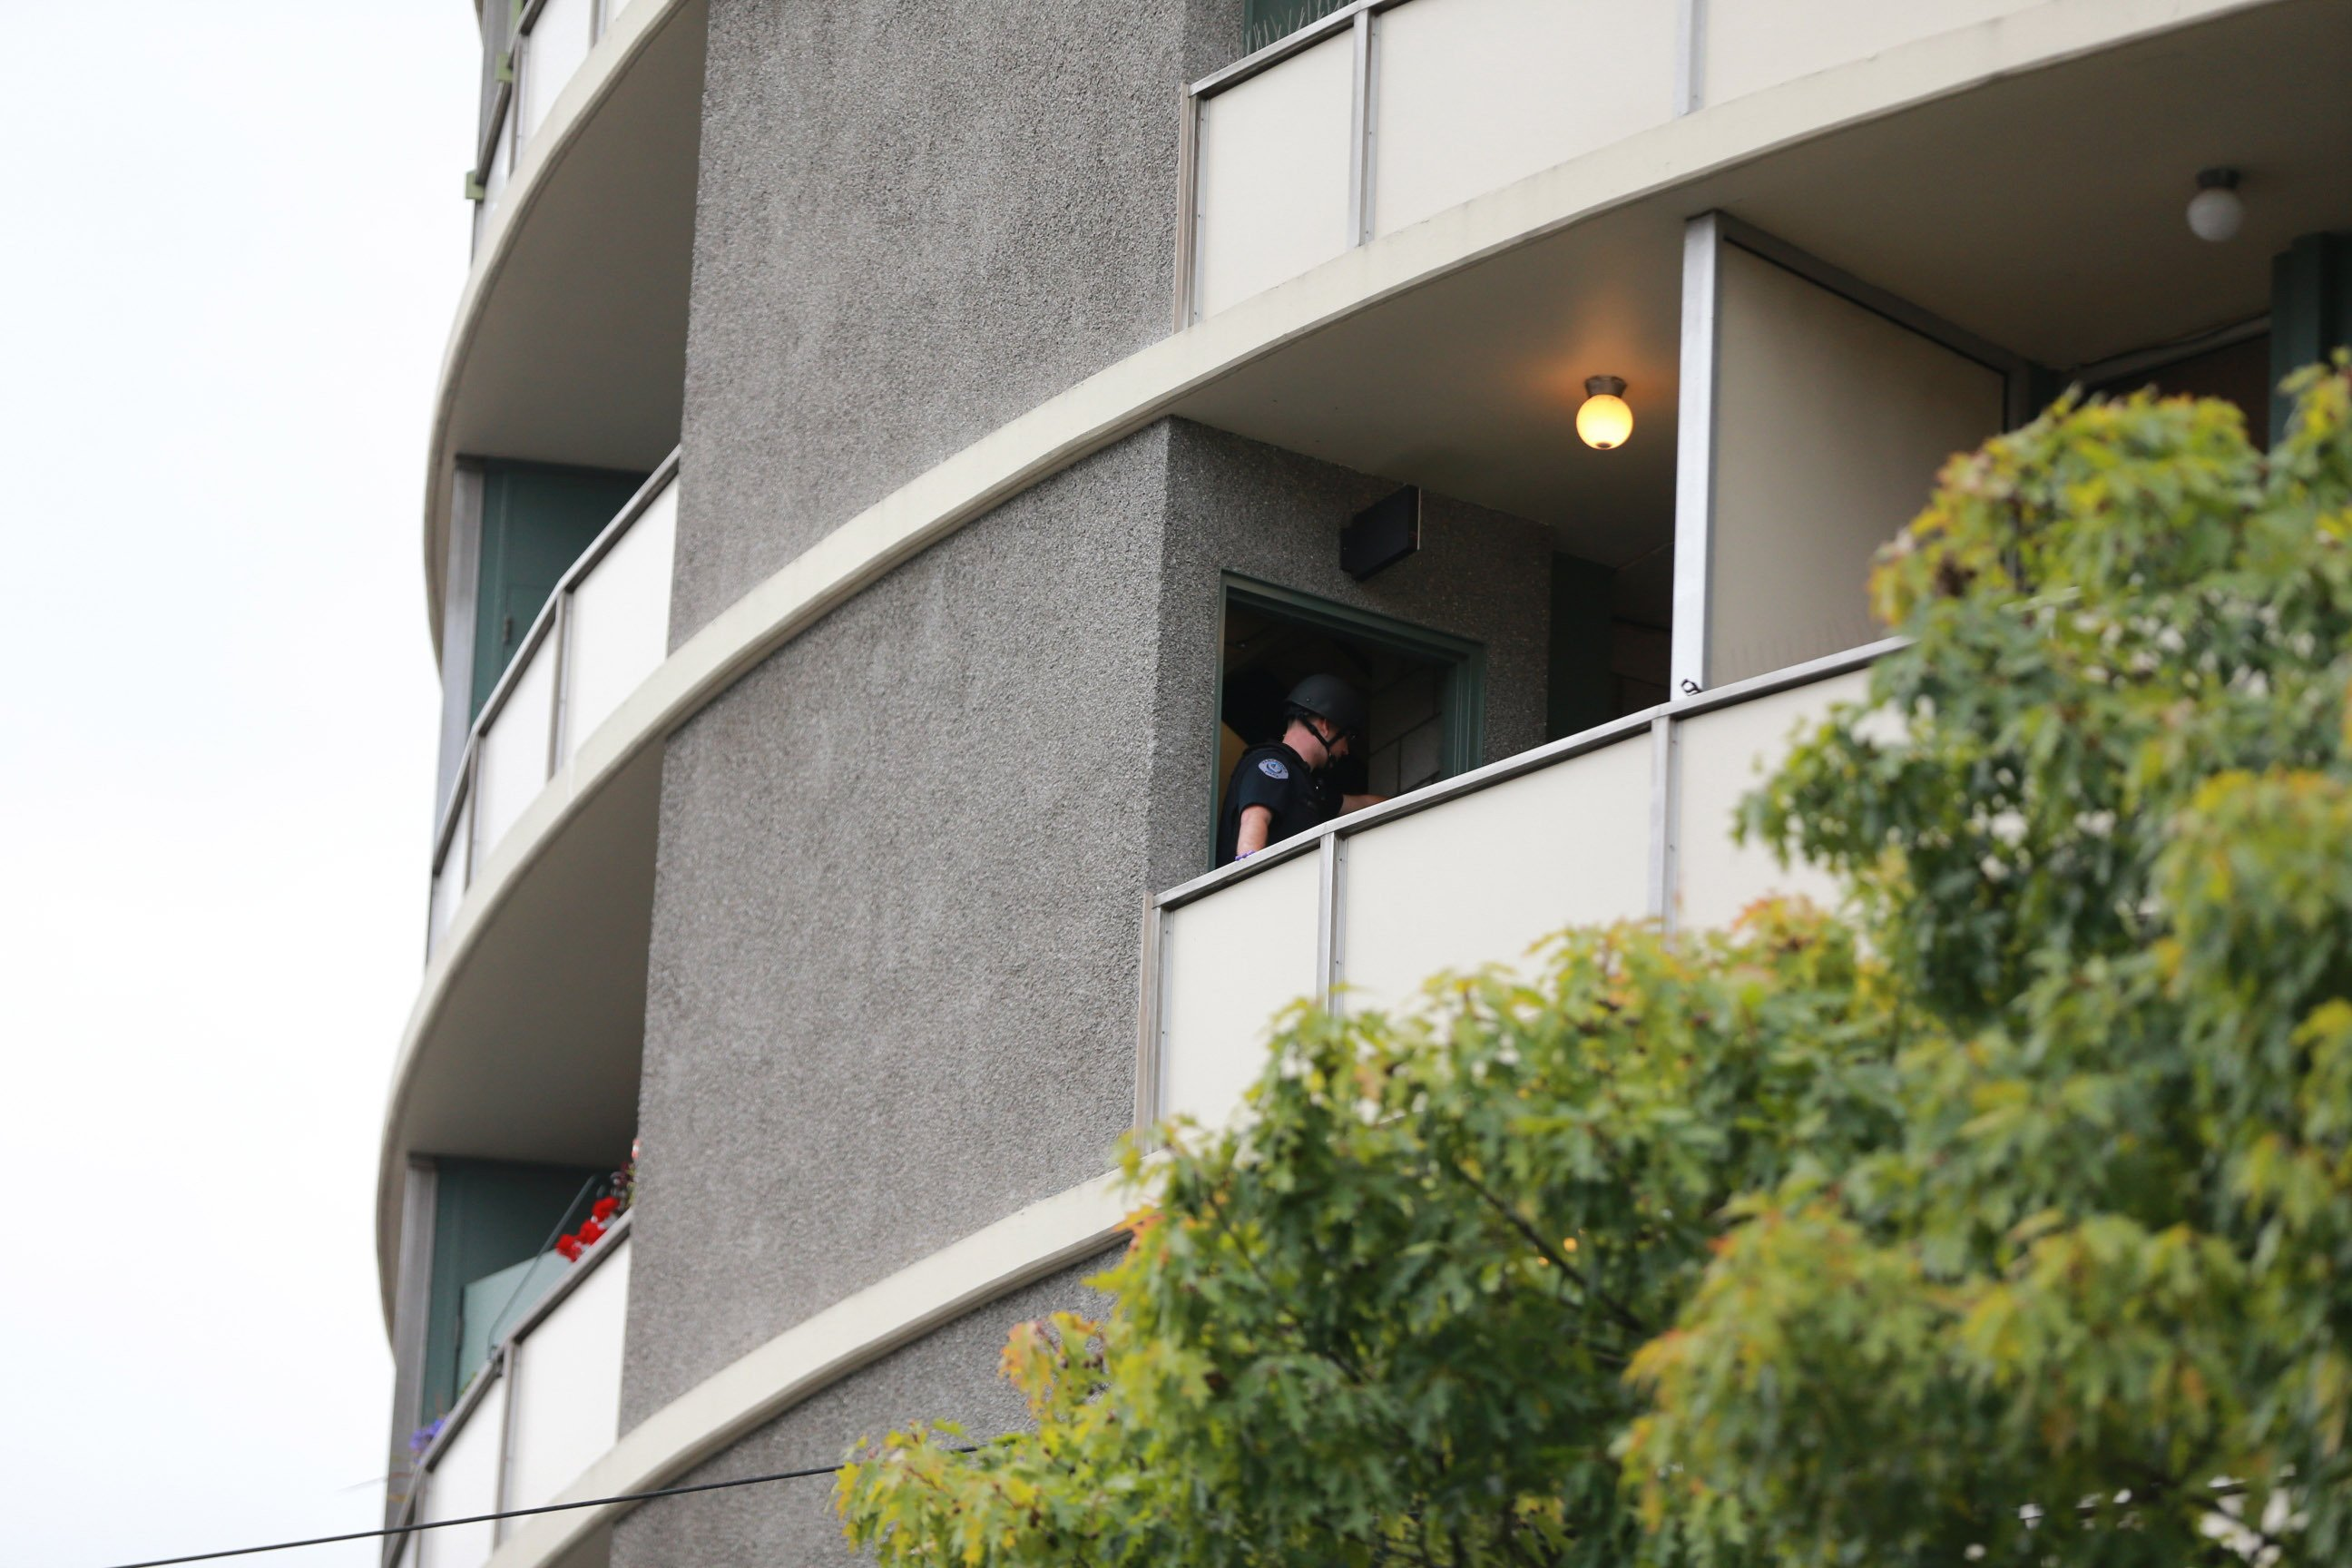 1 killed in shooting at Washington state apartment building